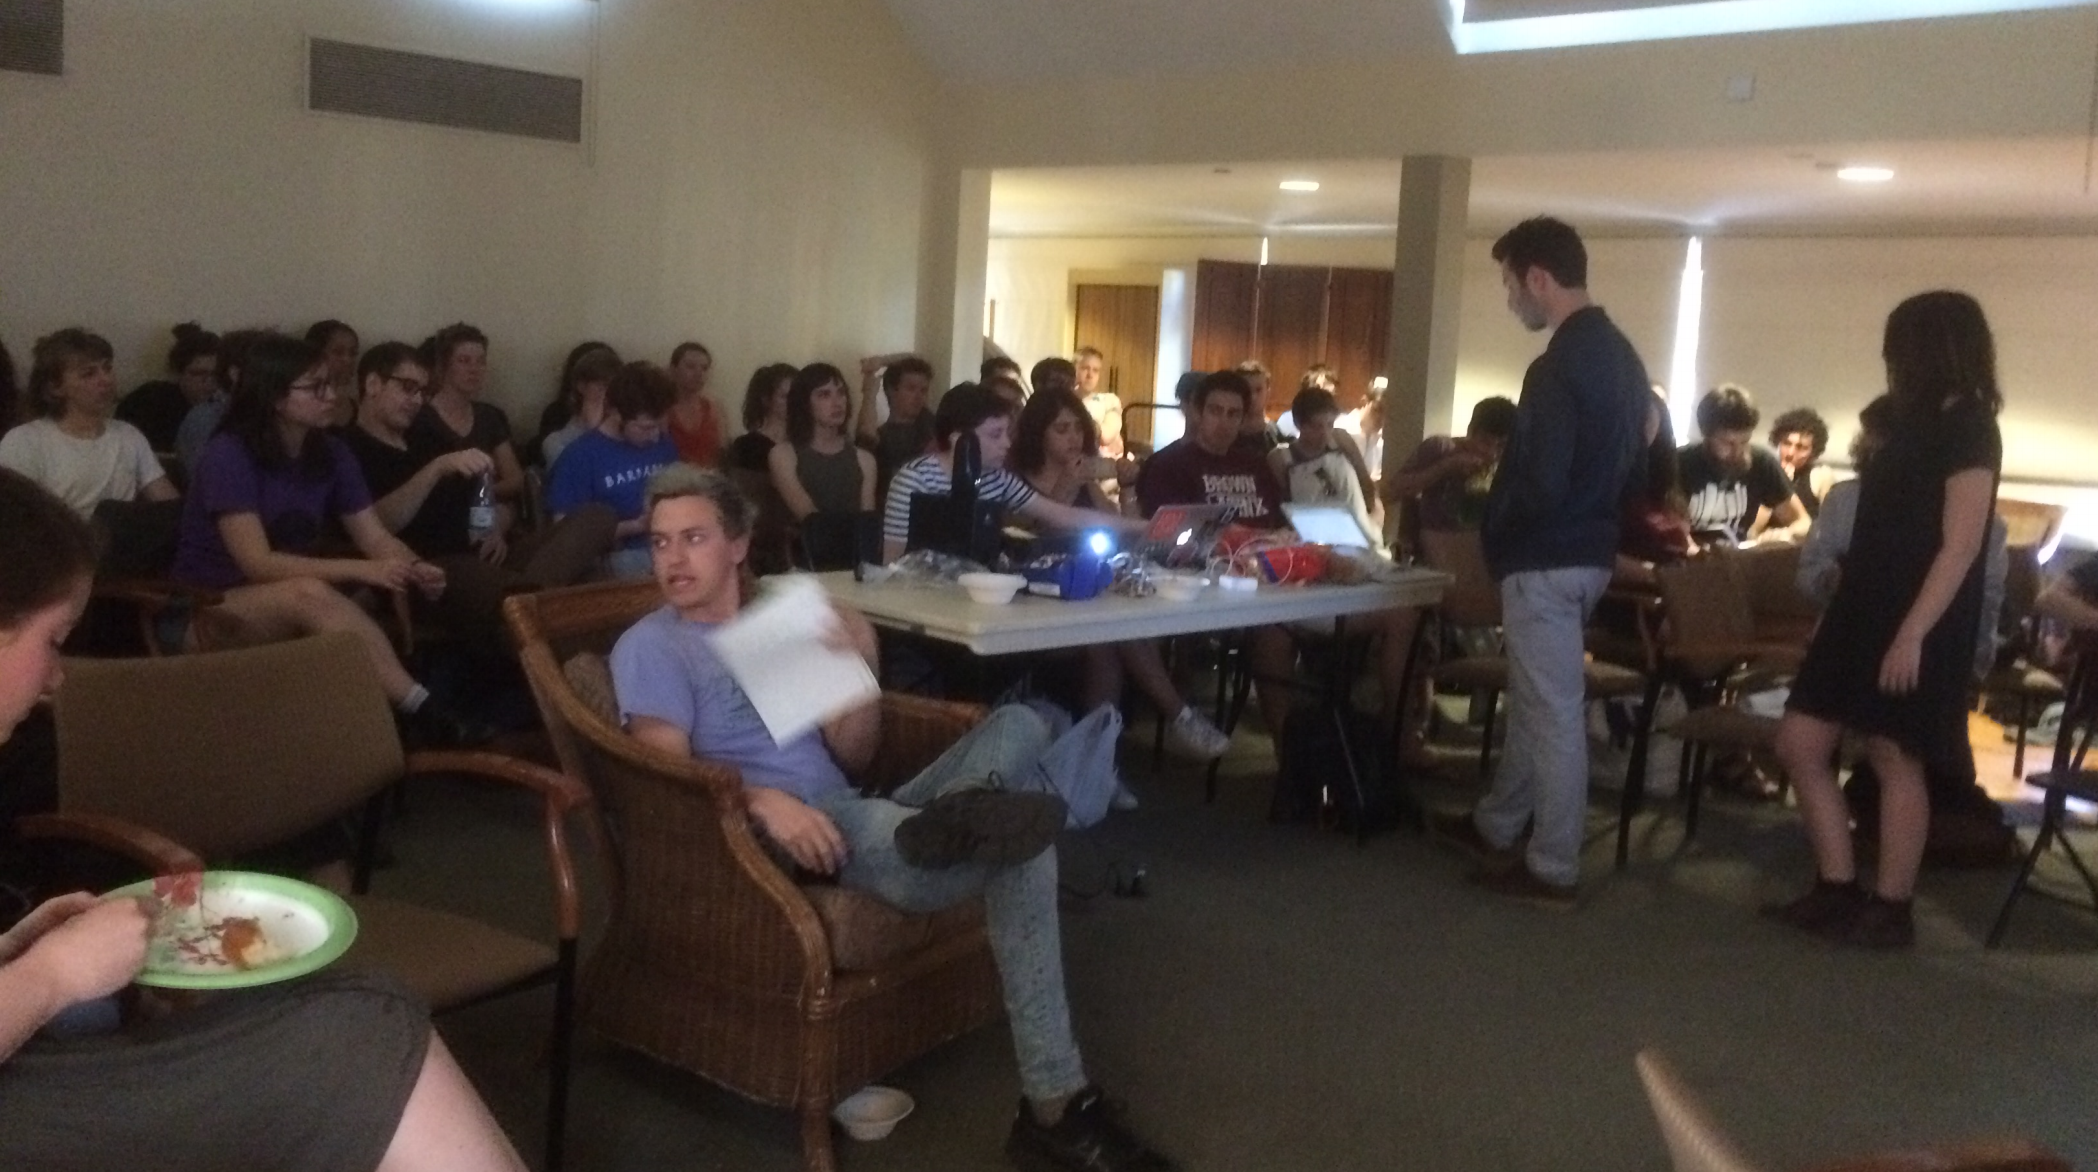 Students gather in Brown/risd Hillel for the event.